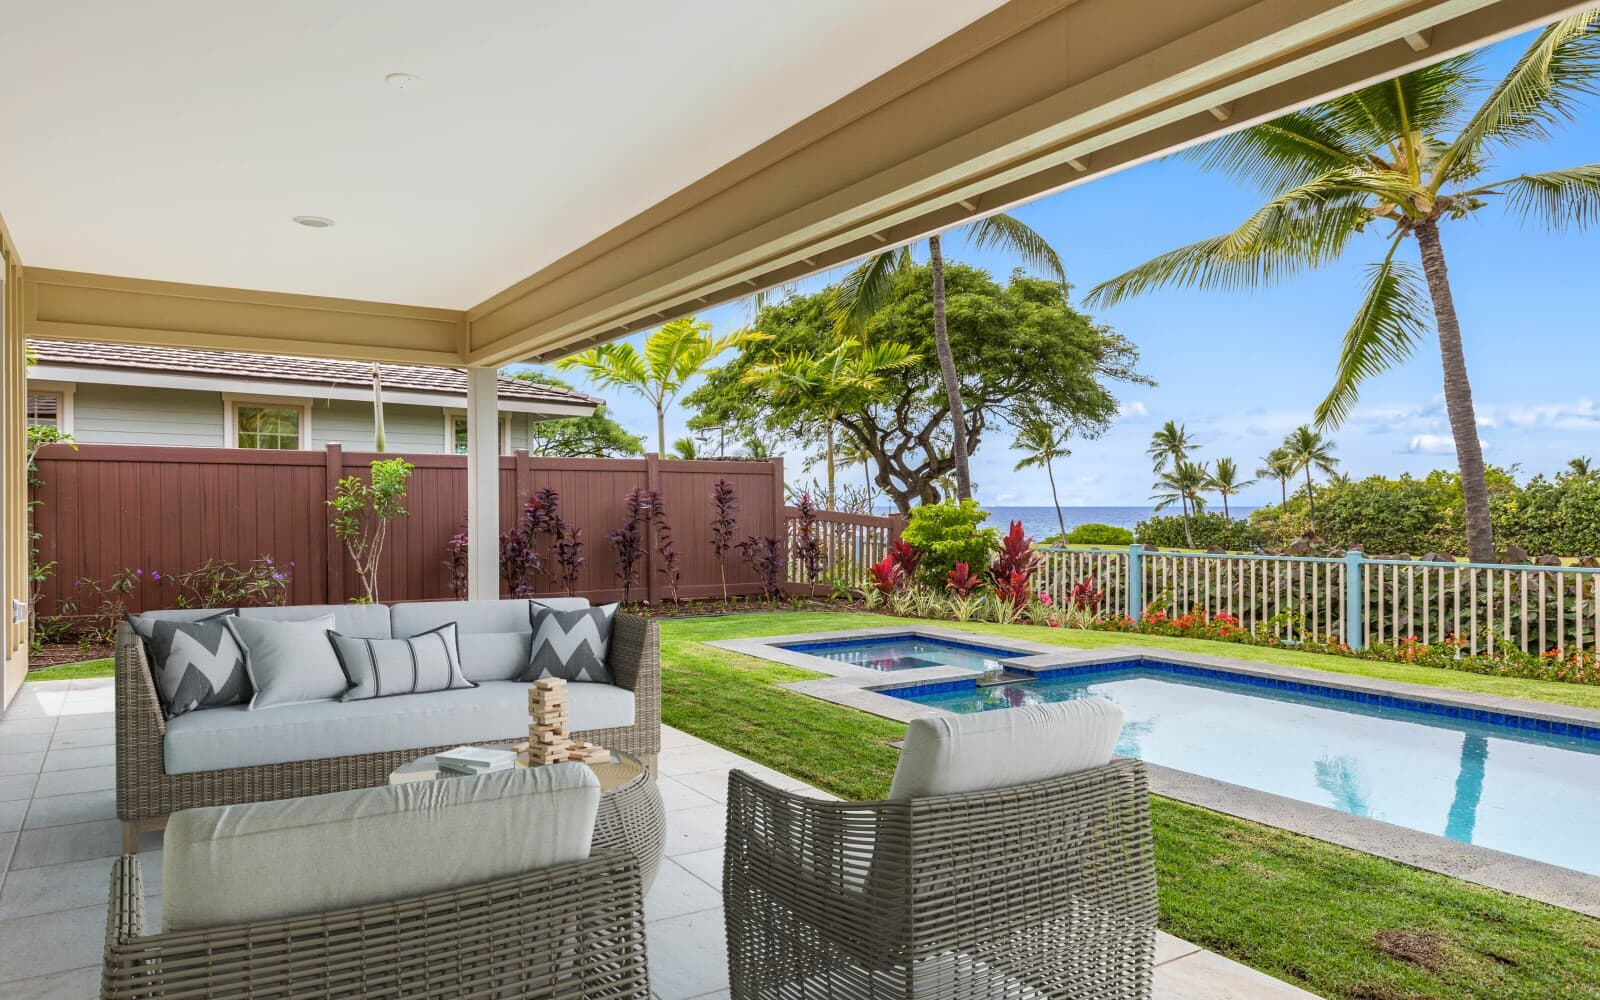 lanai-pool-lot-28-plan-3-holua-kai-at-keauhou-big-island-brookfield-residential